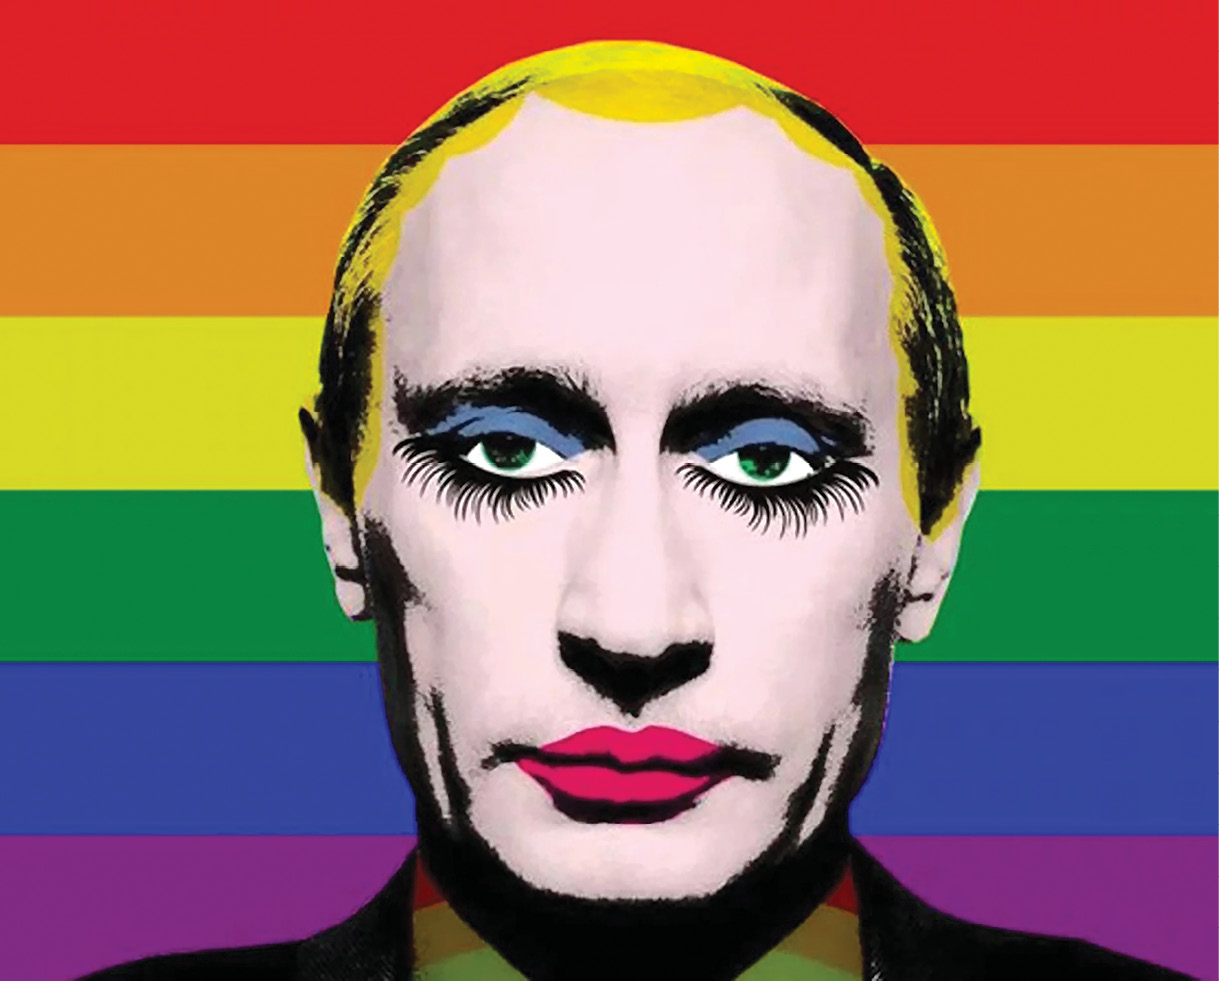 "Vladimir Putin officially banned this popular meme of himself with his face painted in drag. That reaction inadvertently made the meme more popular than ever, and it became an international sensation. According to the author of this article, Putin's ""thin skin"" makes him an easy target for ridicule.  (Artist unknown)"